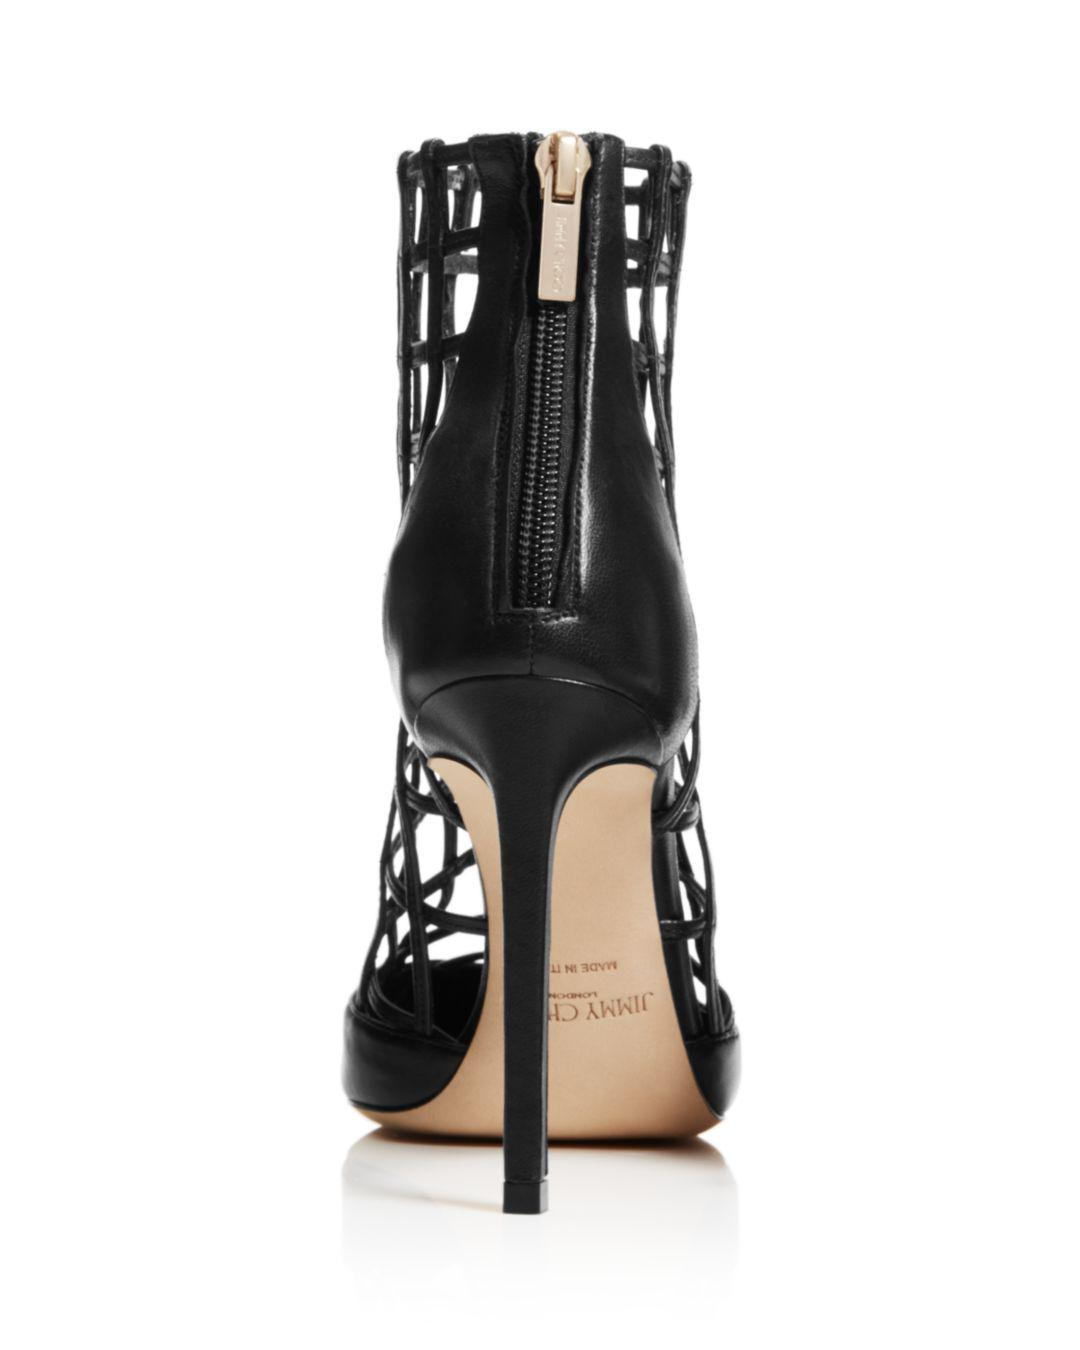 4c1d0490022b Lyst - Jimmy Choo Women s Sheldon 100 Caged Leather High-heel Booties